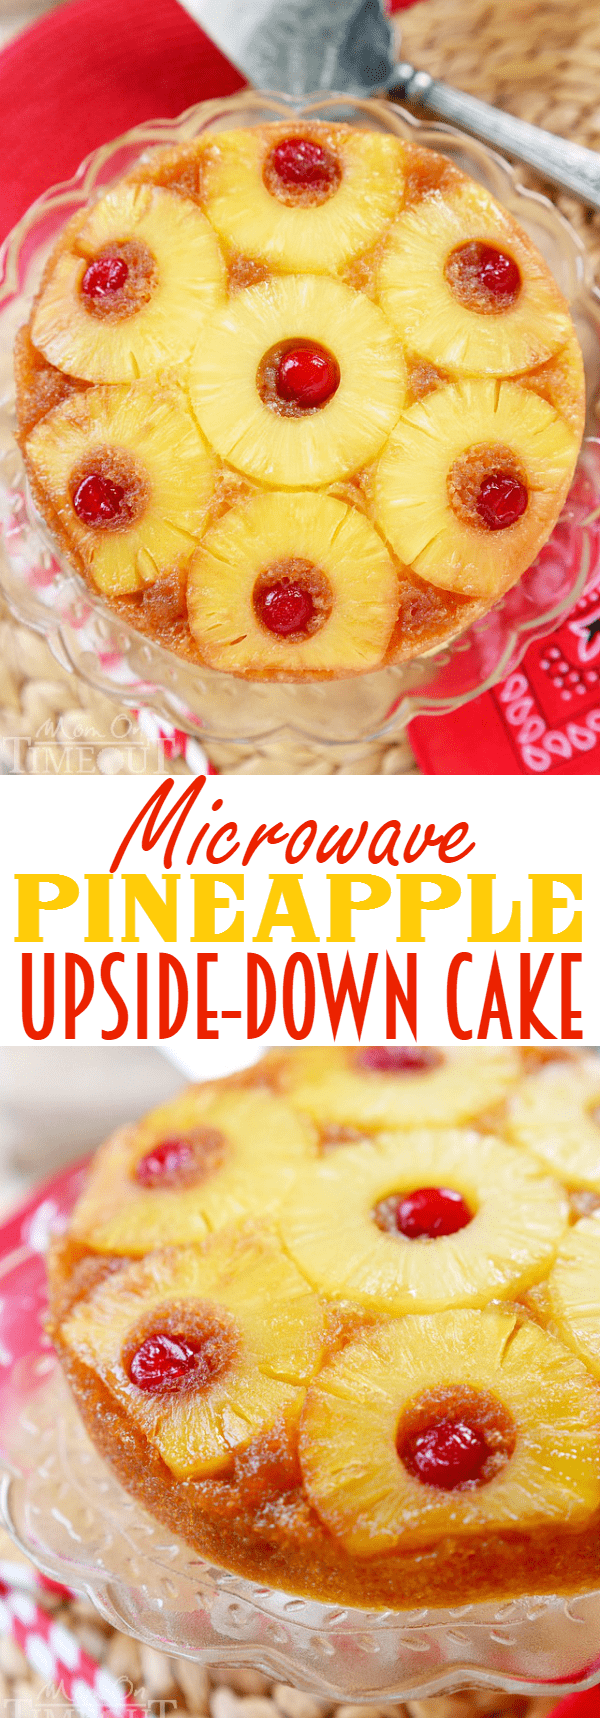 Stay cool this summer with this Microwave Pineapple Upside Down Cake! In just 10 minutes, you and your family can be enjoying this gorgeous cake - straight from your microwave! The PERFECT easy dessert recipe!   MomOnTimeout.com